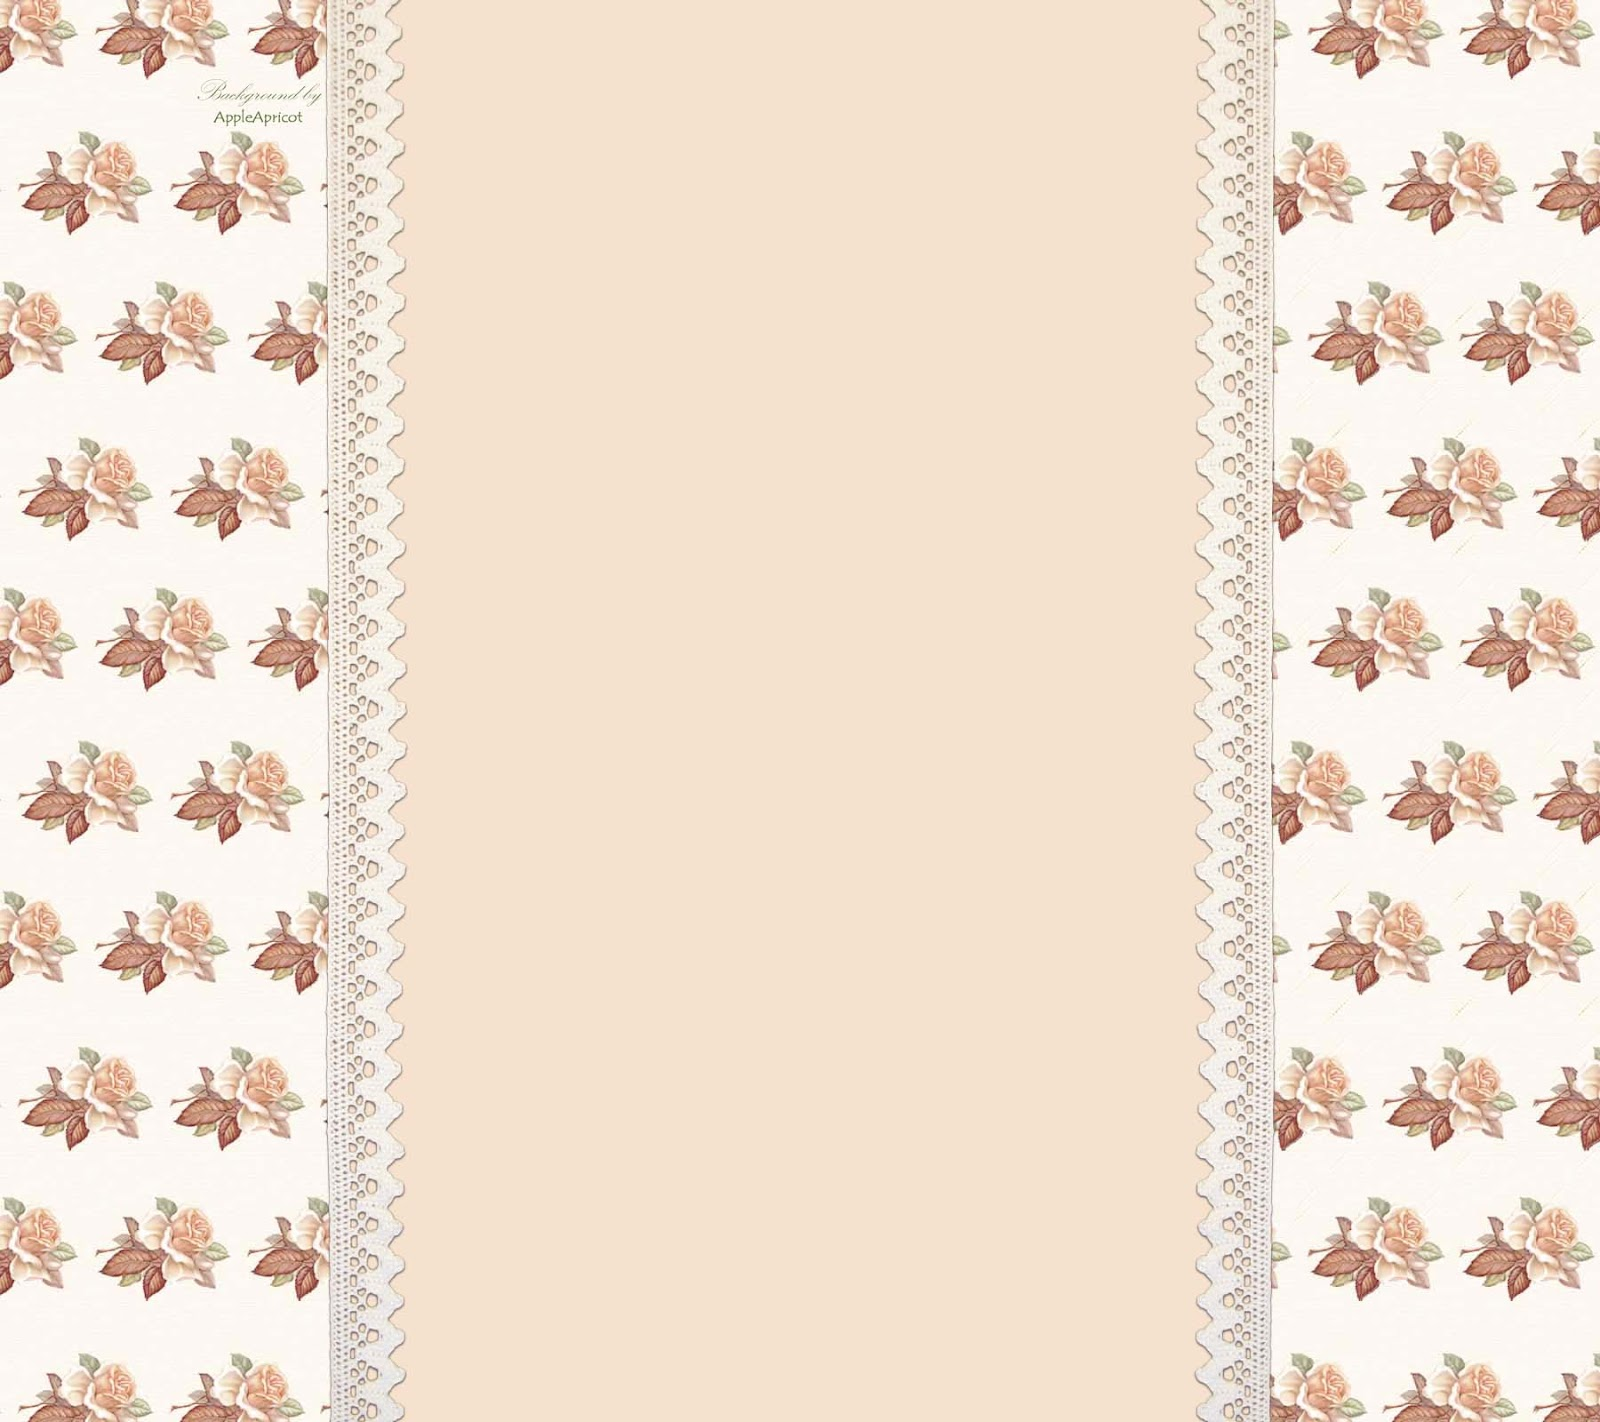 appleapricot s freebies blogger 2 columns background pink vintage roses